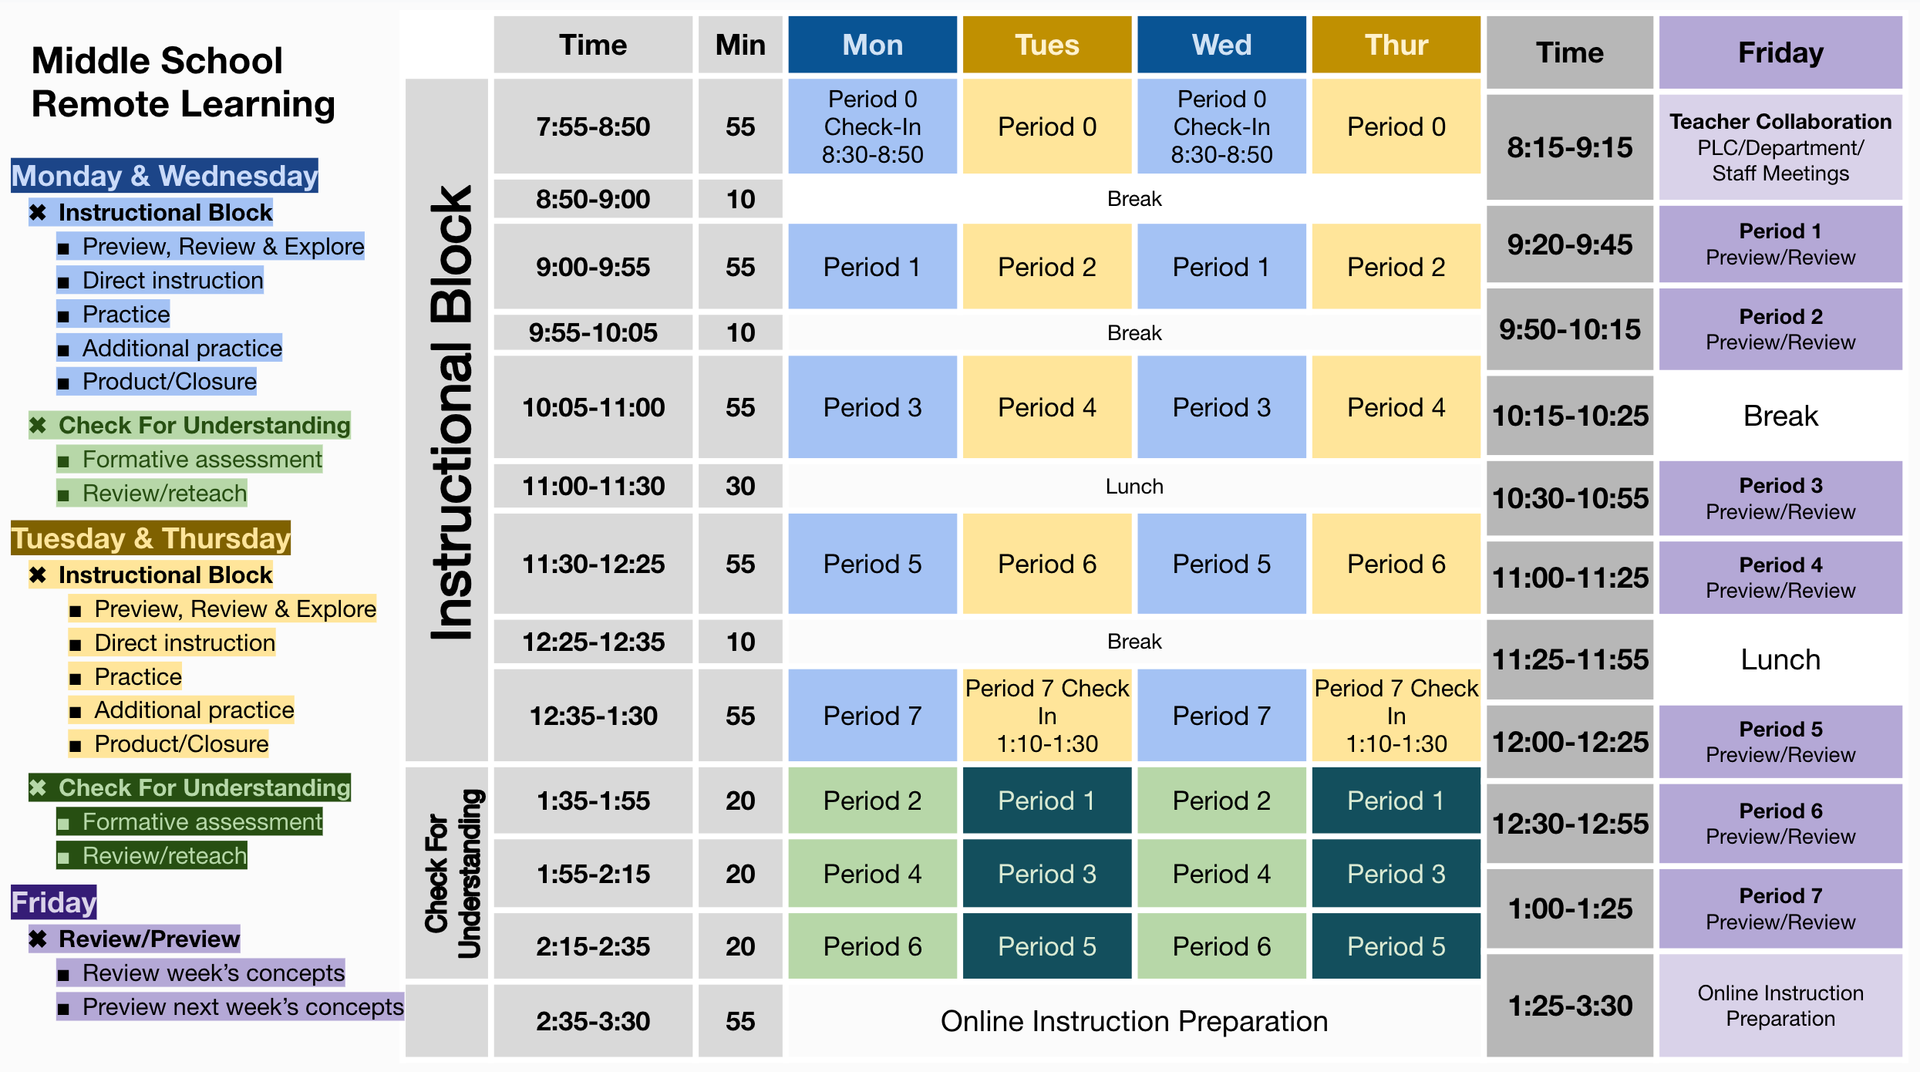 Middle school remote learning bell schedule.